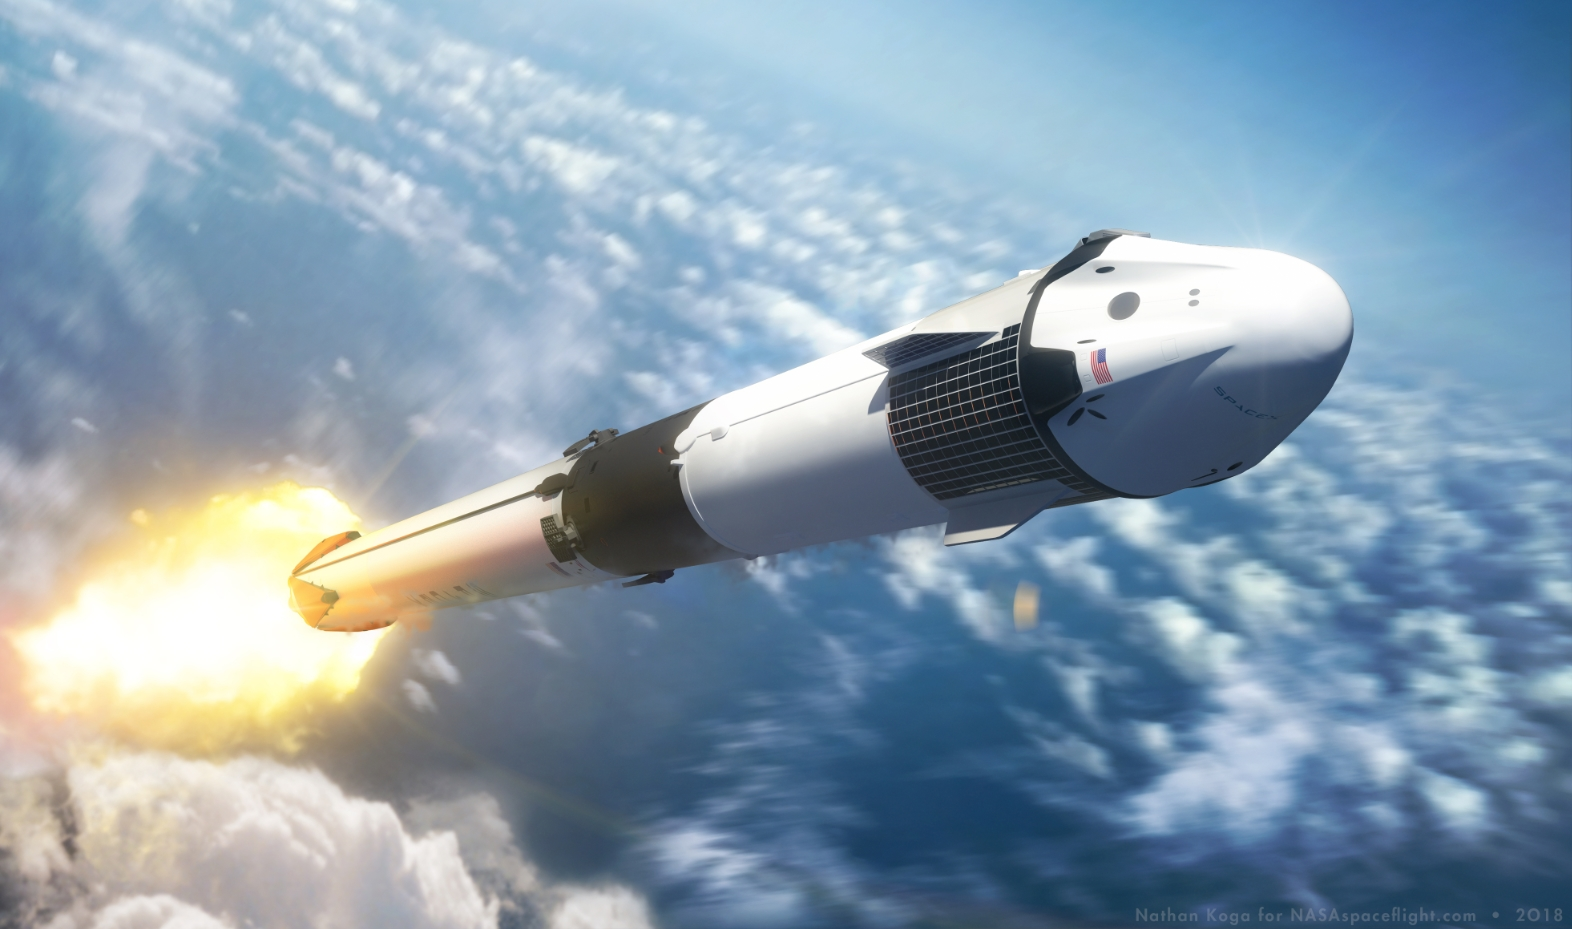 SpaceX Takes Giant Leap For Private Space Travel